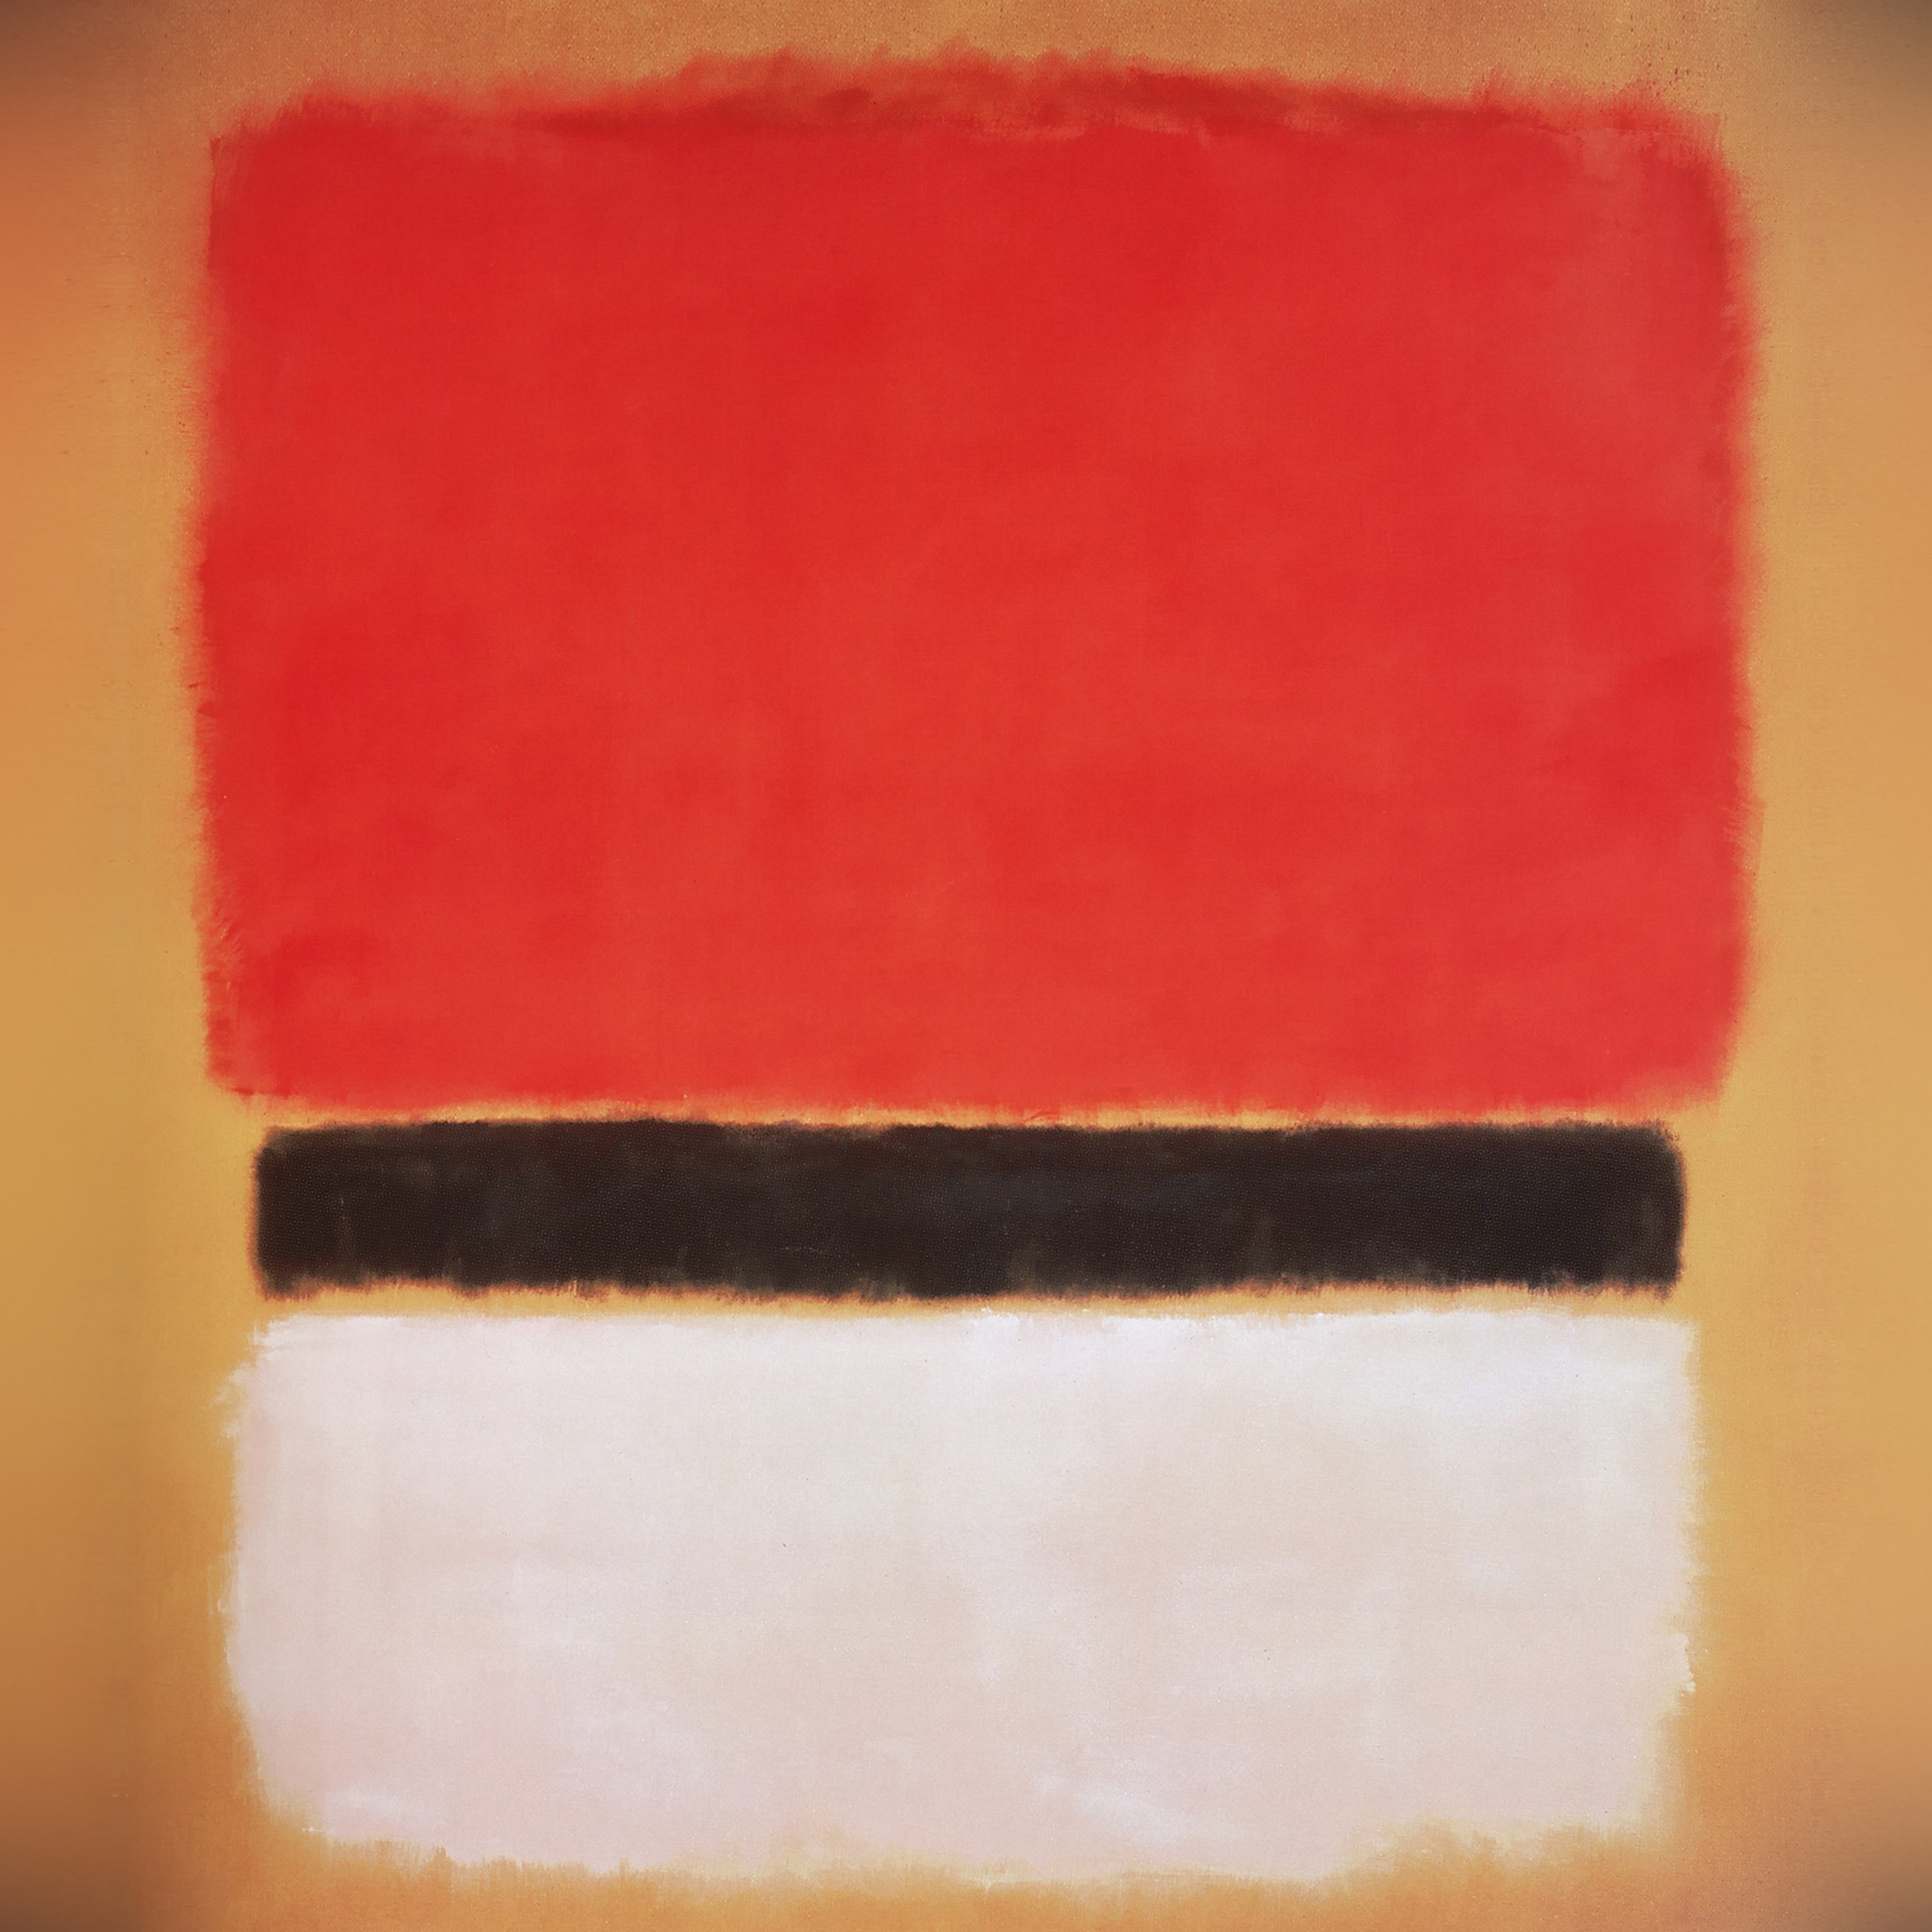 Pattern Wallpaper Iphone 5 Al67 Red Black White Rothko Mark Paint Style Art Classic